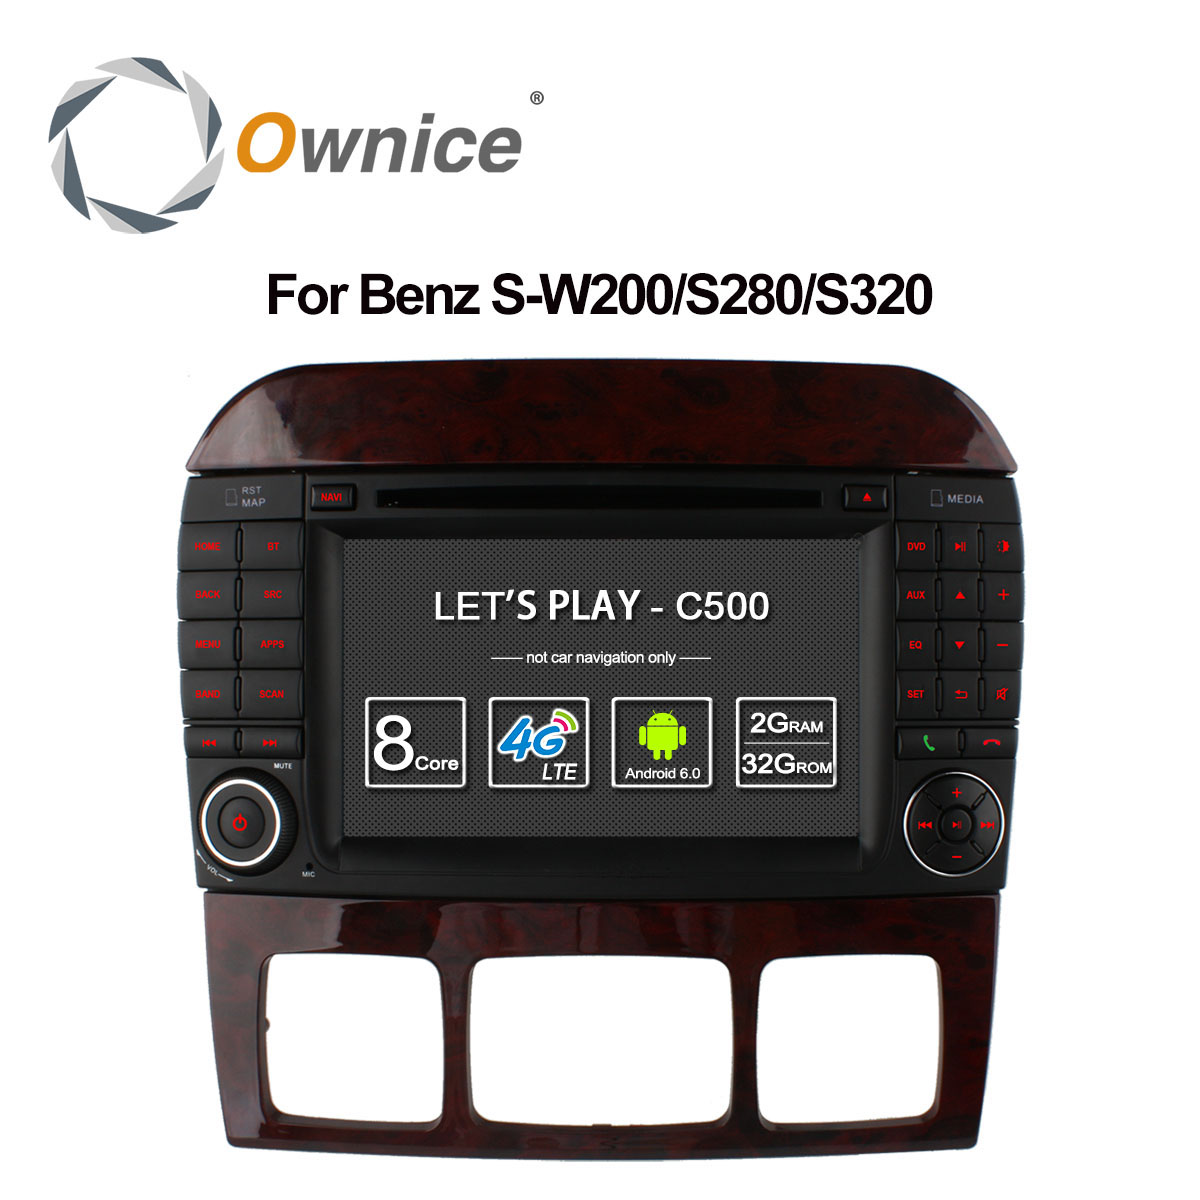 Ownice C500 8 Core Android 6.0 Car DVD Player <font><b>for</b></font> <font><b>Mercedes</b></font> S Class S500 <font><b>S600</b></font> S280 S320 S350 S400 S420 S430 W220 Radio 4G <font><b>GPS</b></font> image